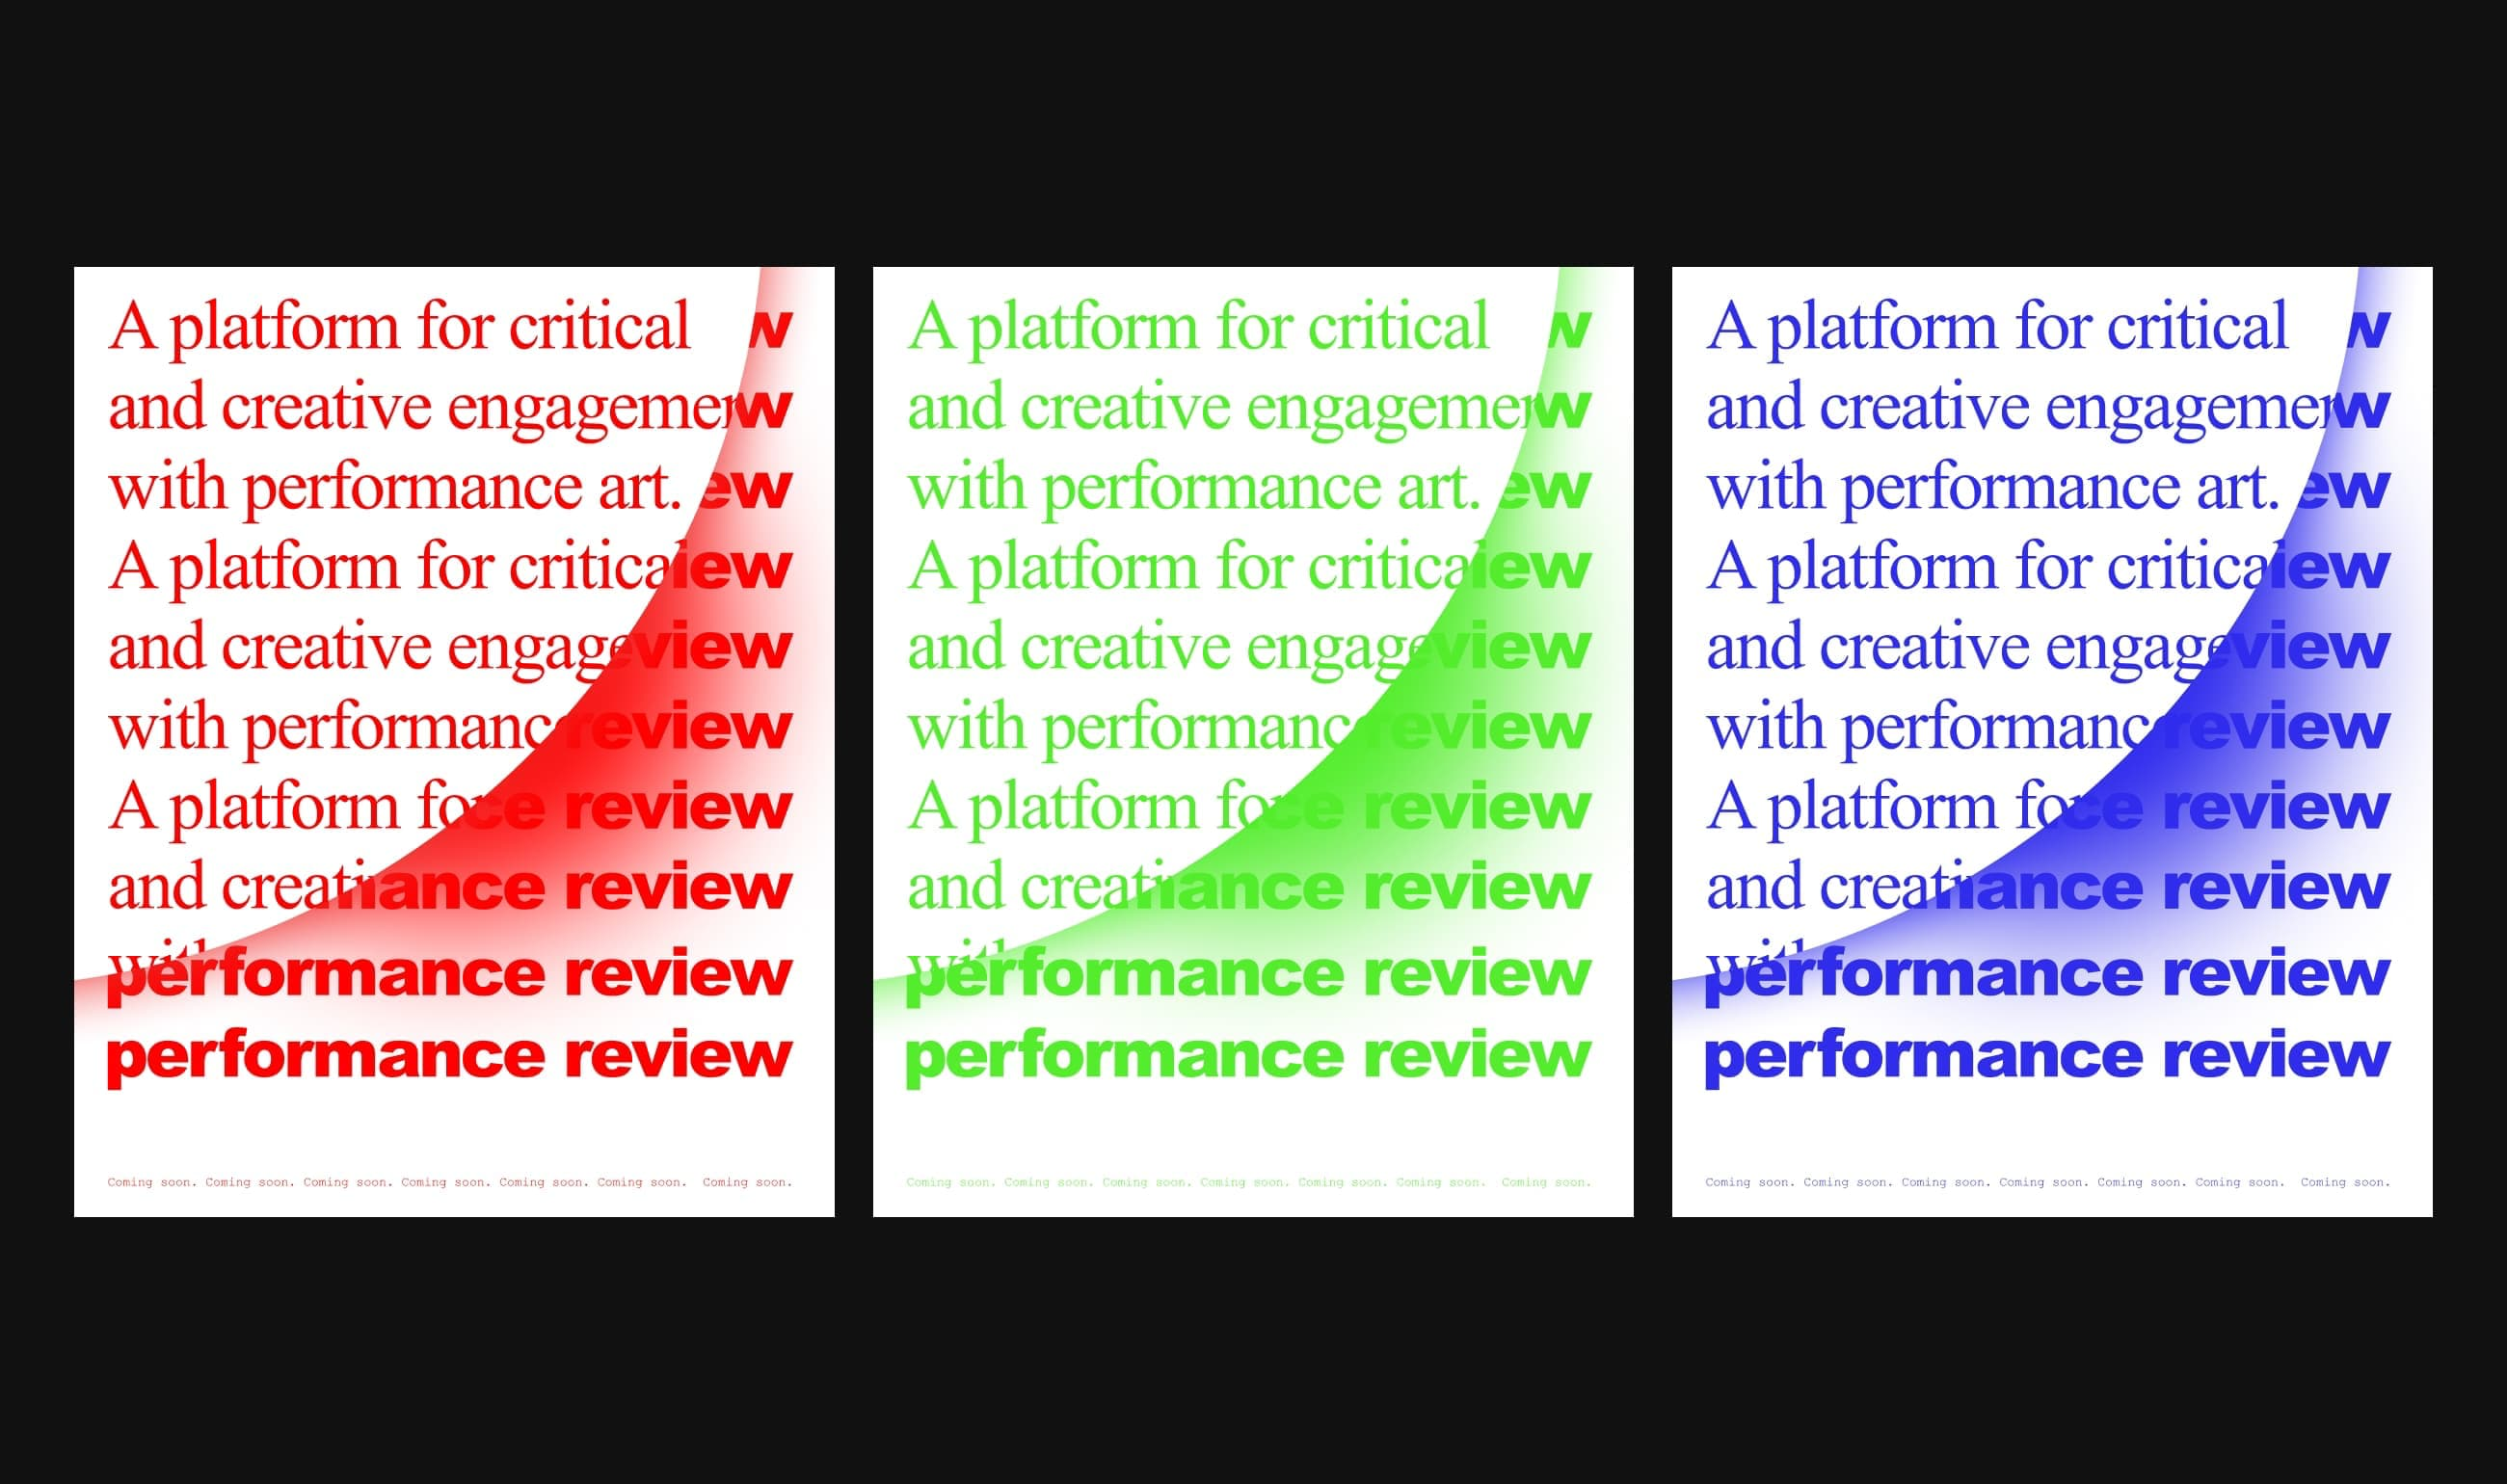 Performance Review coming soon poster